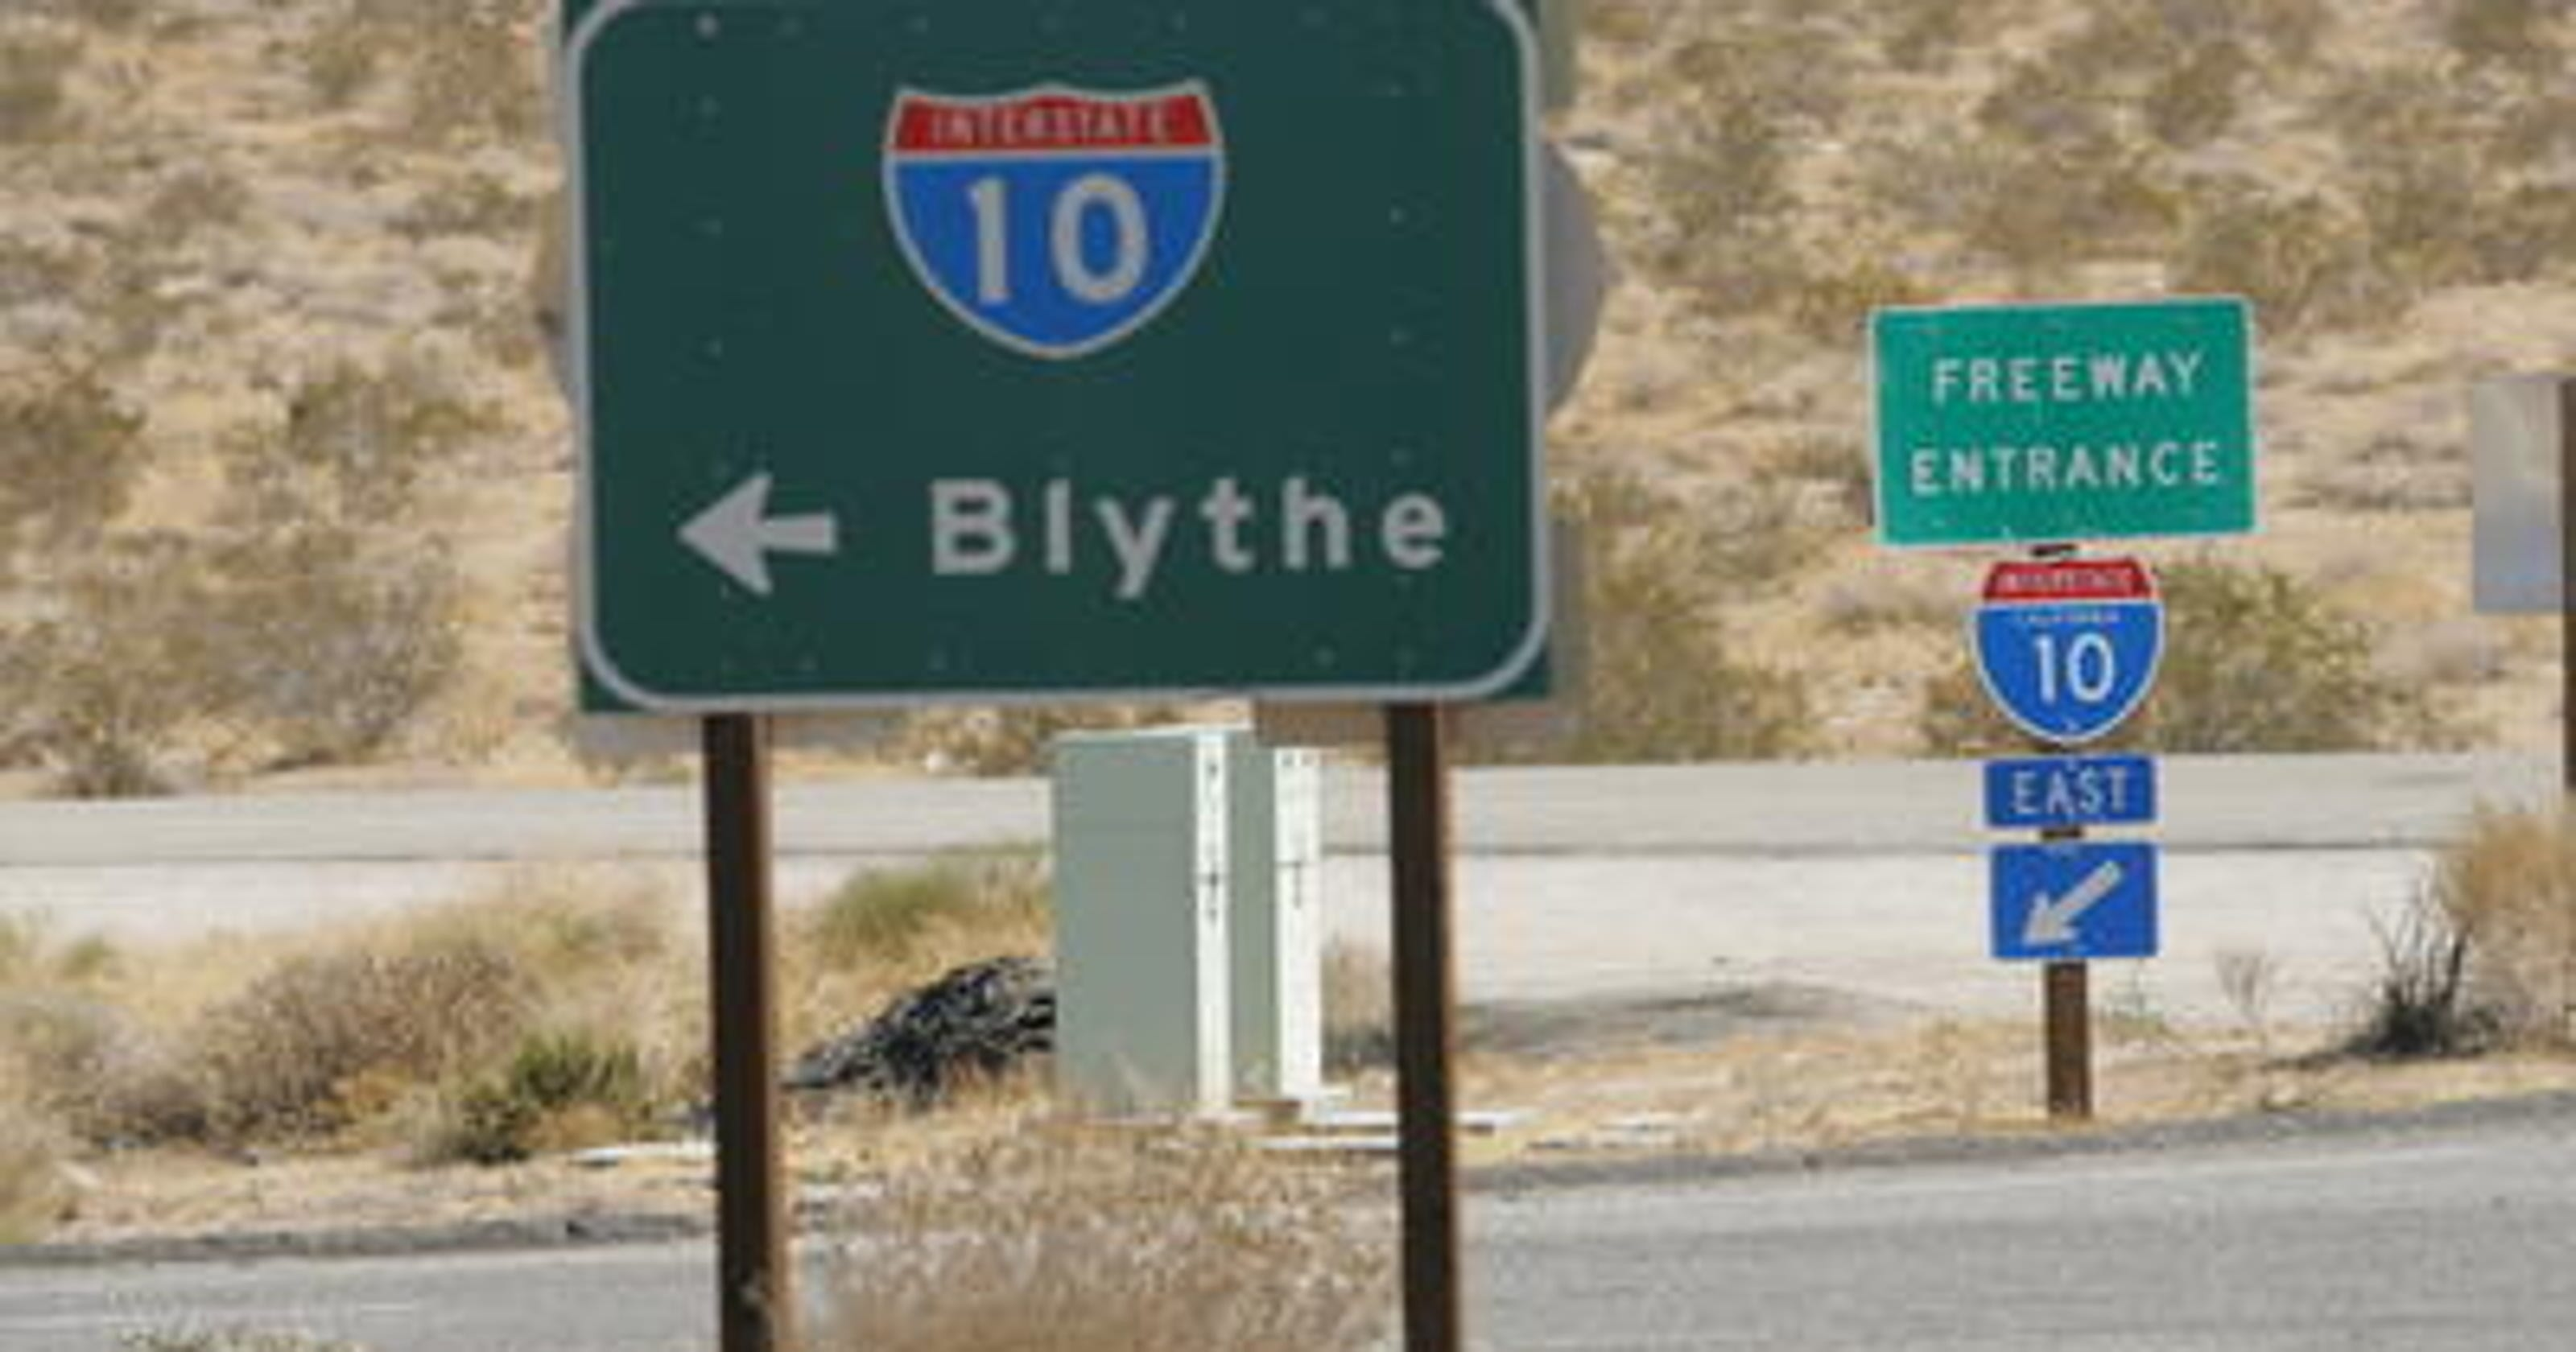 One killed in Interstate 10 crash east of Coachella Tuesday morning